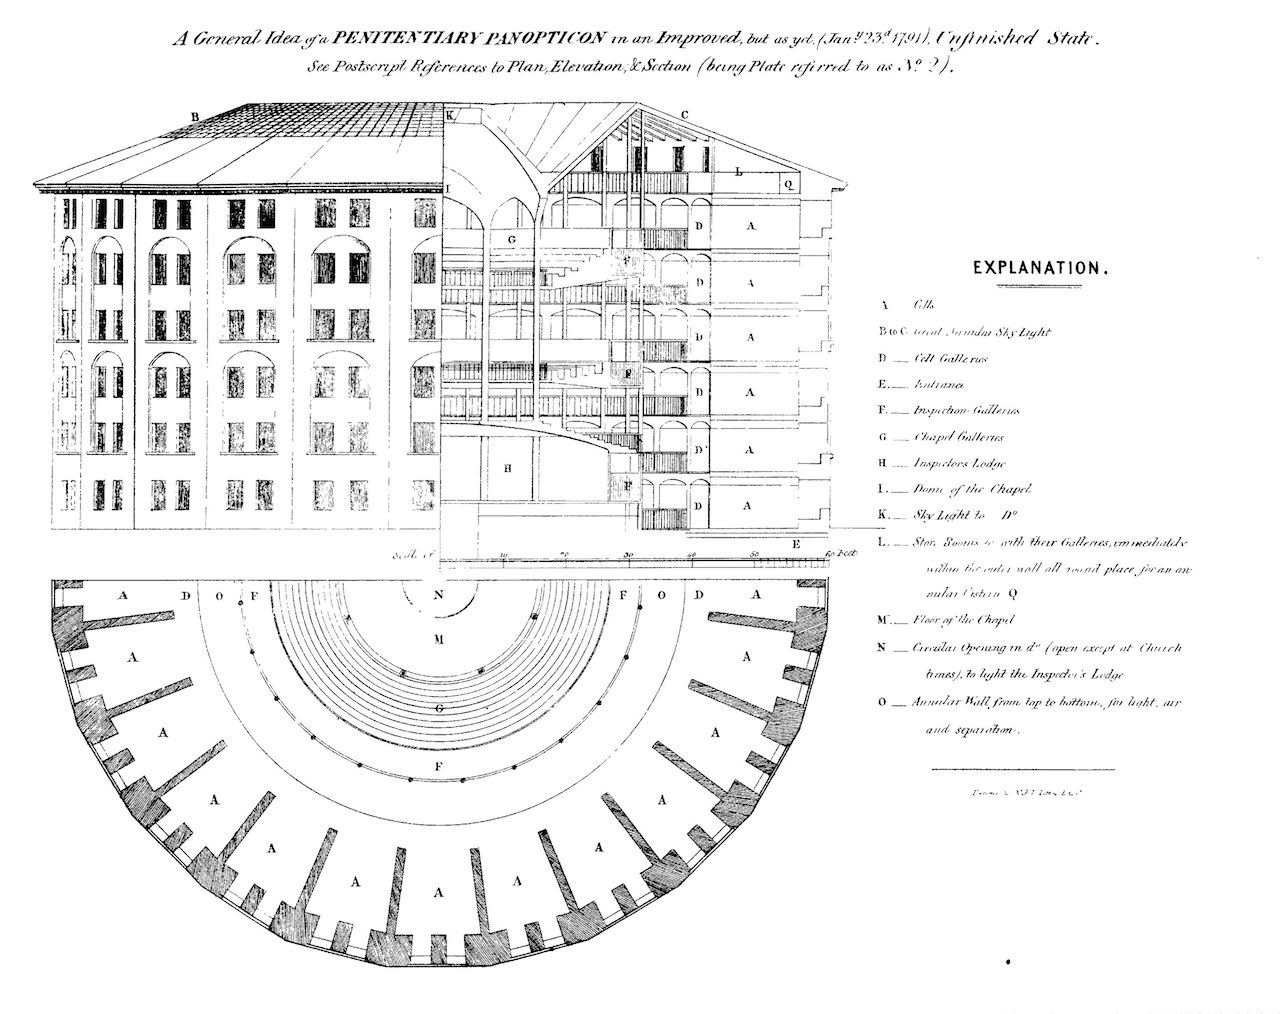 Elevation, section and plan of Jeremy Bentham's Panopticon penitentiary, drawn by Willey Reveley, 1791